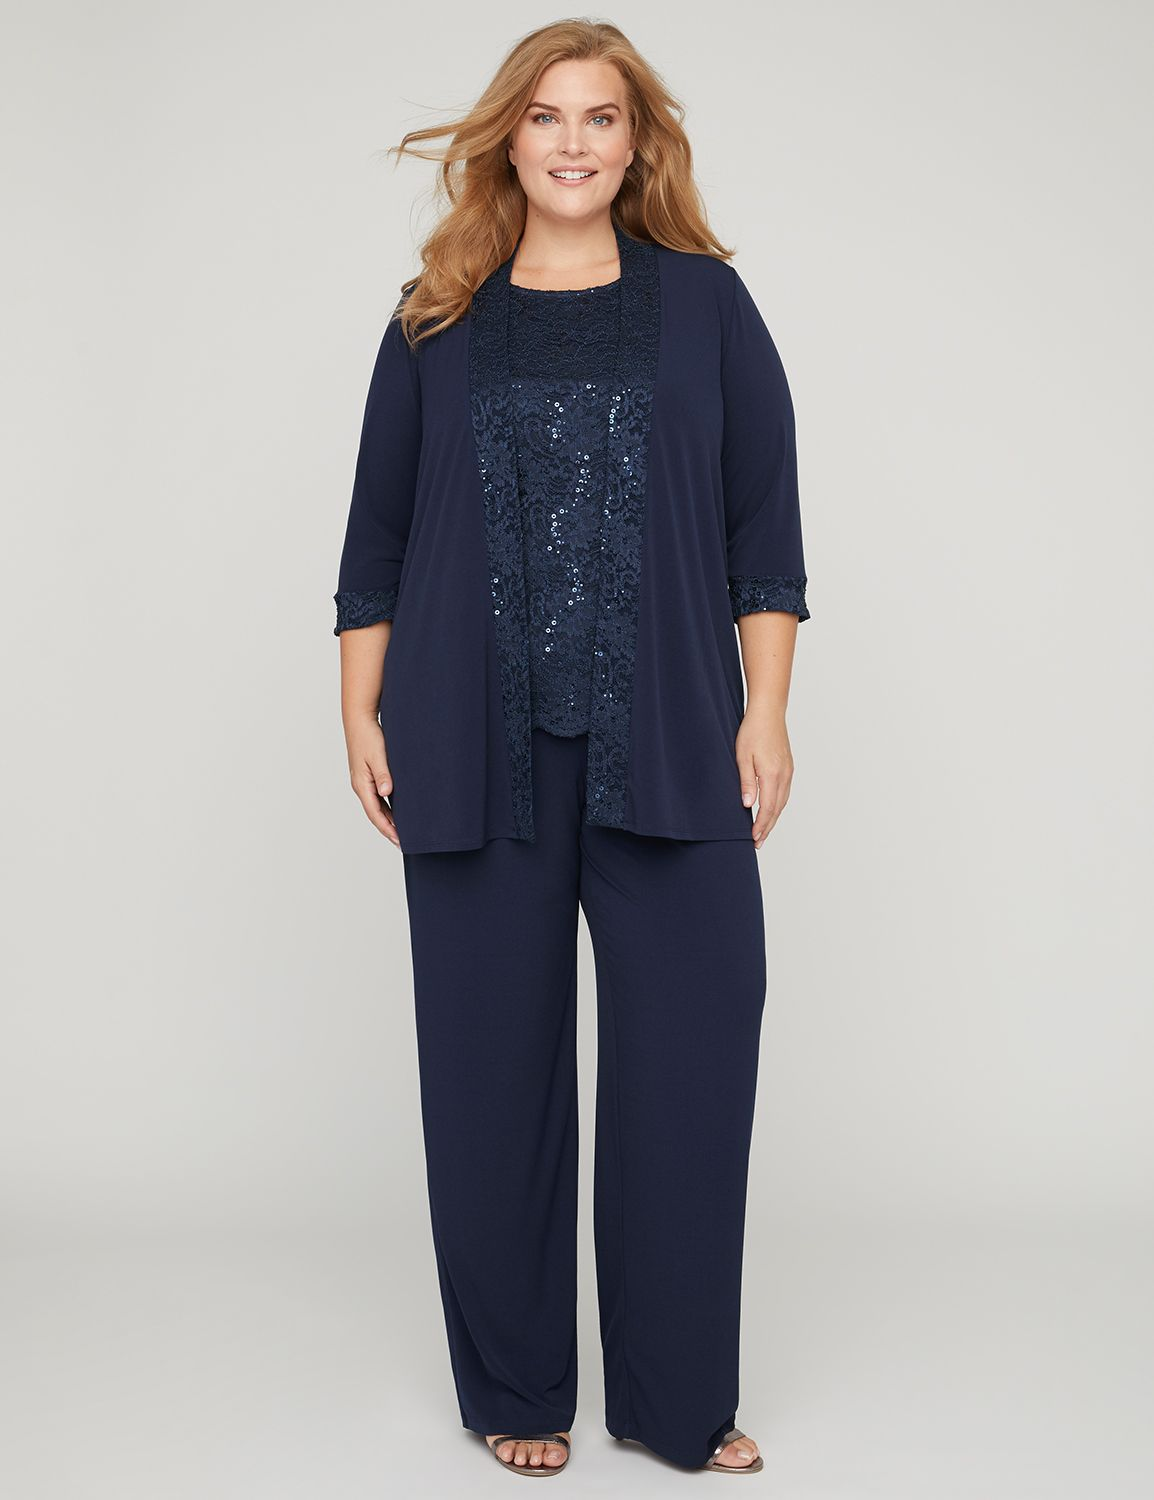 3-Piece Lace Gala Pant Suit